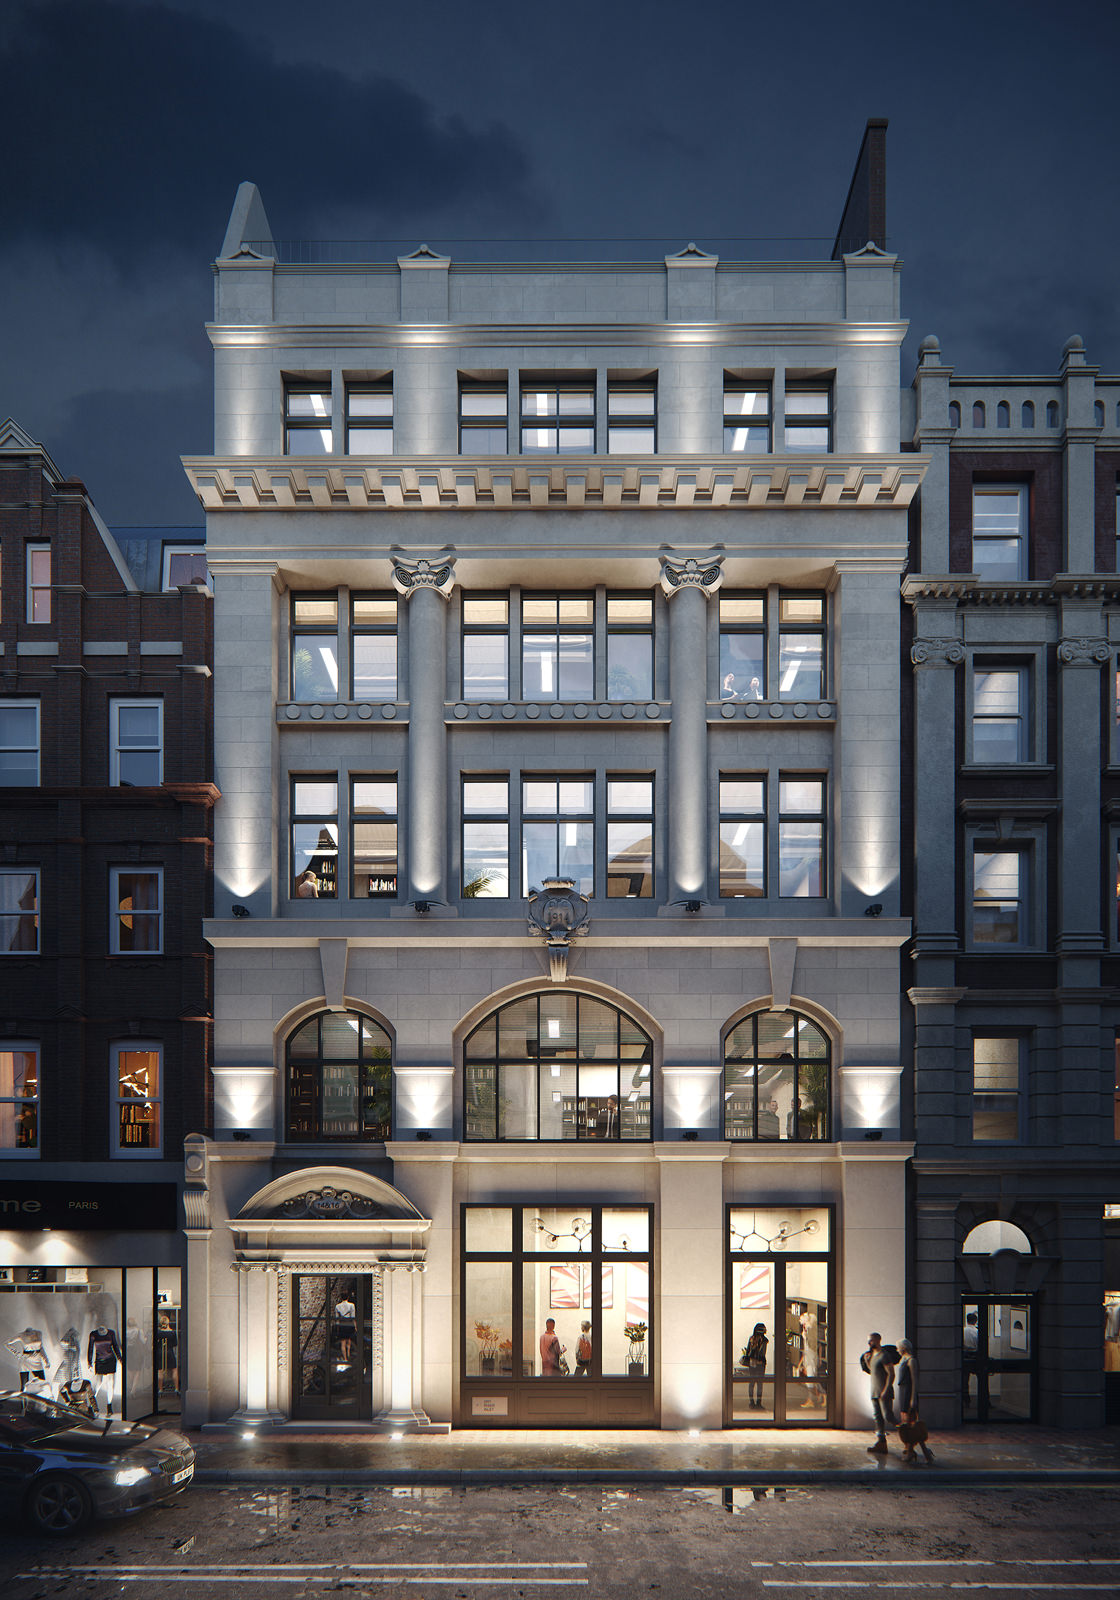 Dusk 3D rendering of an off-white renovated building in London lit with floodlights on all levels